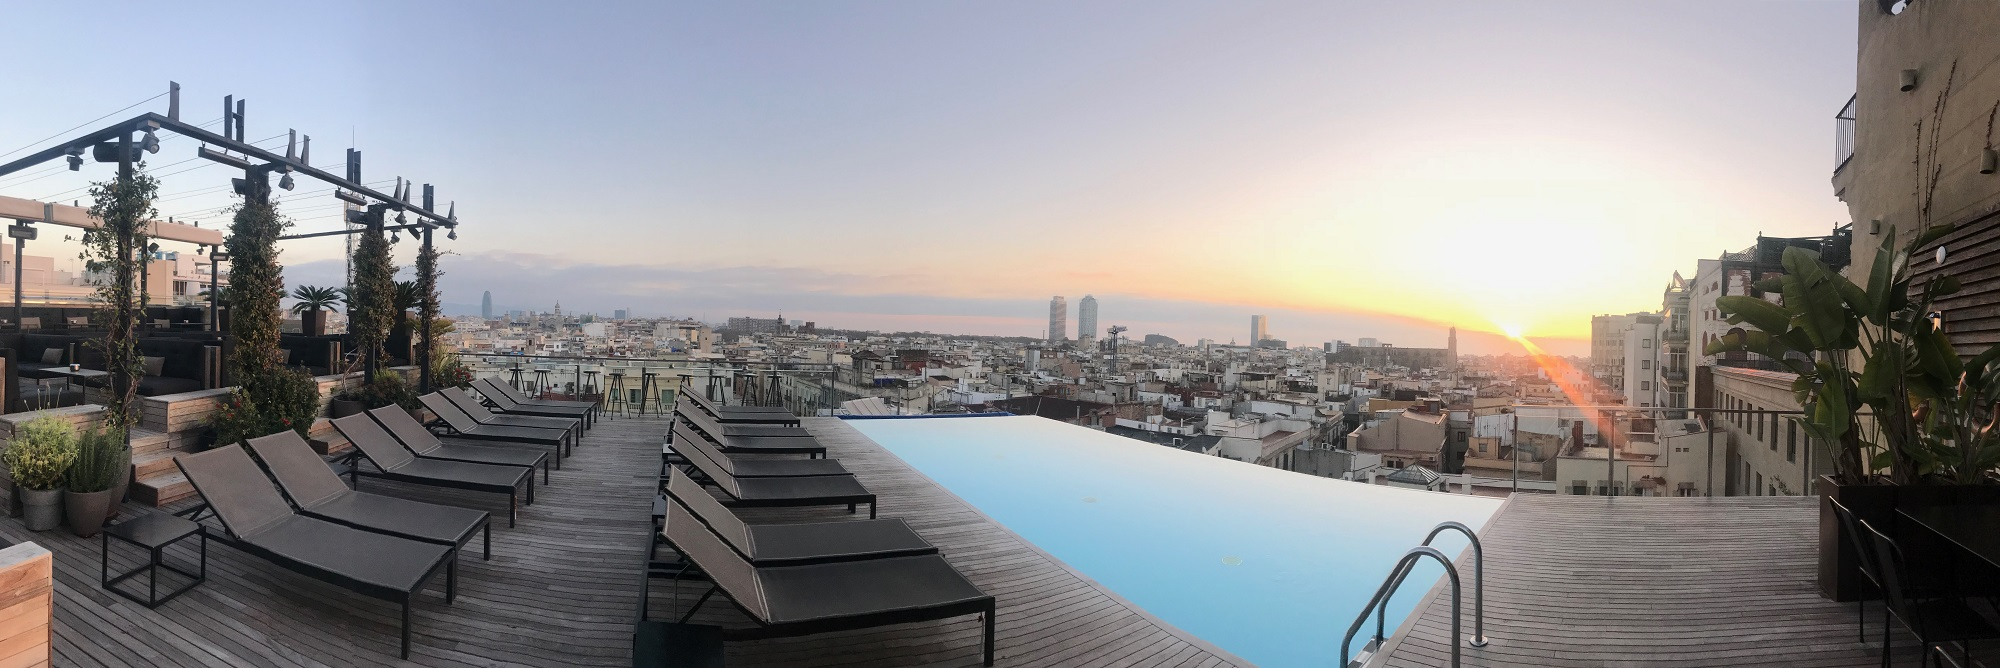 The best rooftop pool in europe at grand hotel central in barcelona the rooftop guide - Infinity pool europe ...